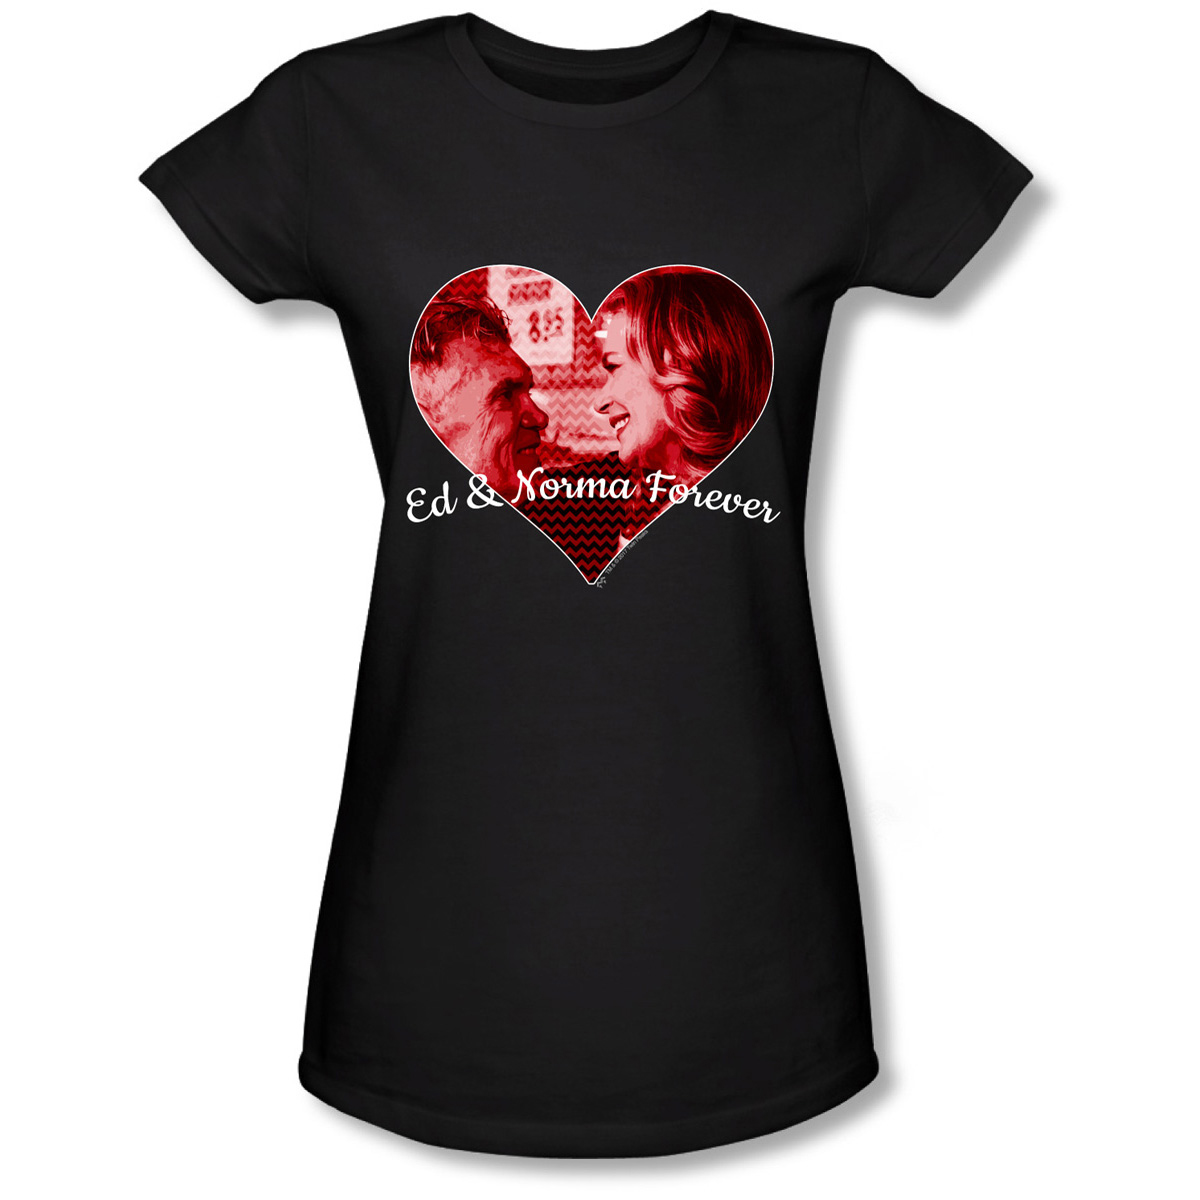 Twin Peaks Ed and Norma Women's Slim Fit T-Shirt